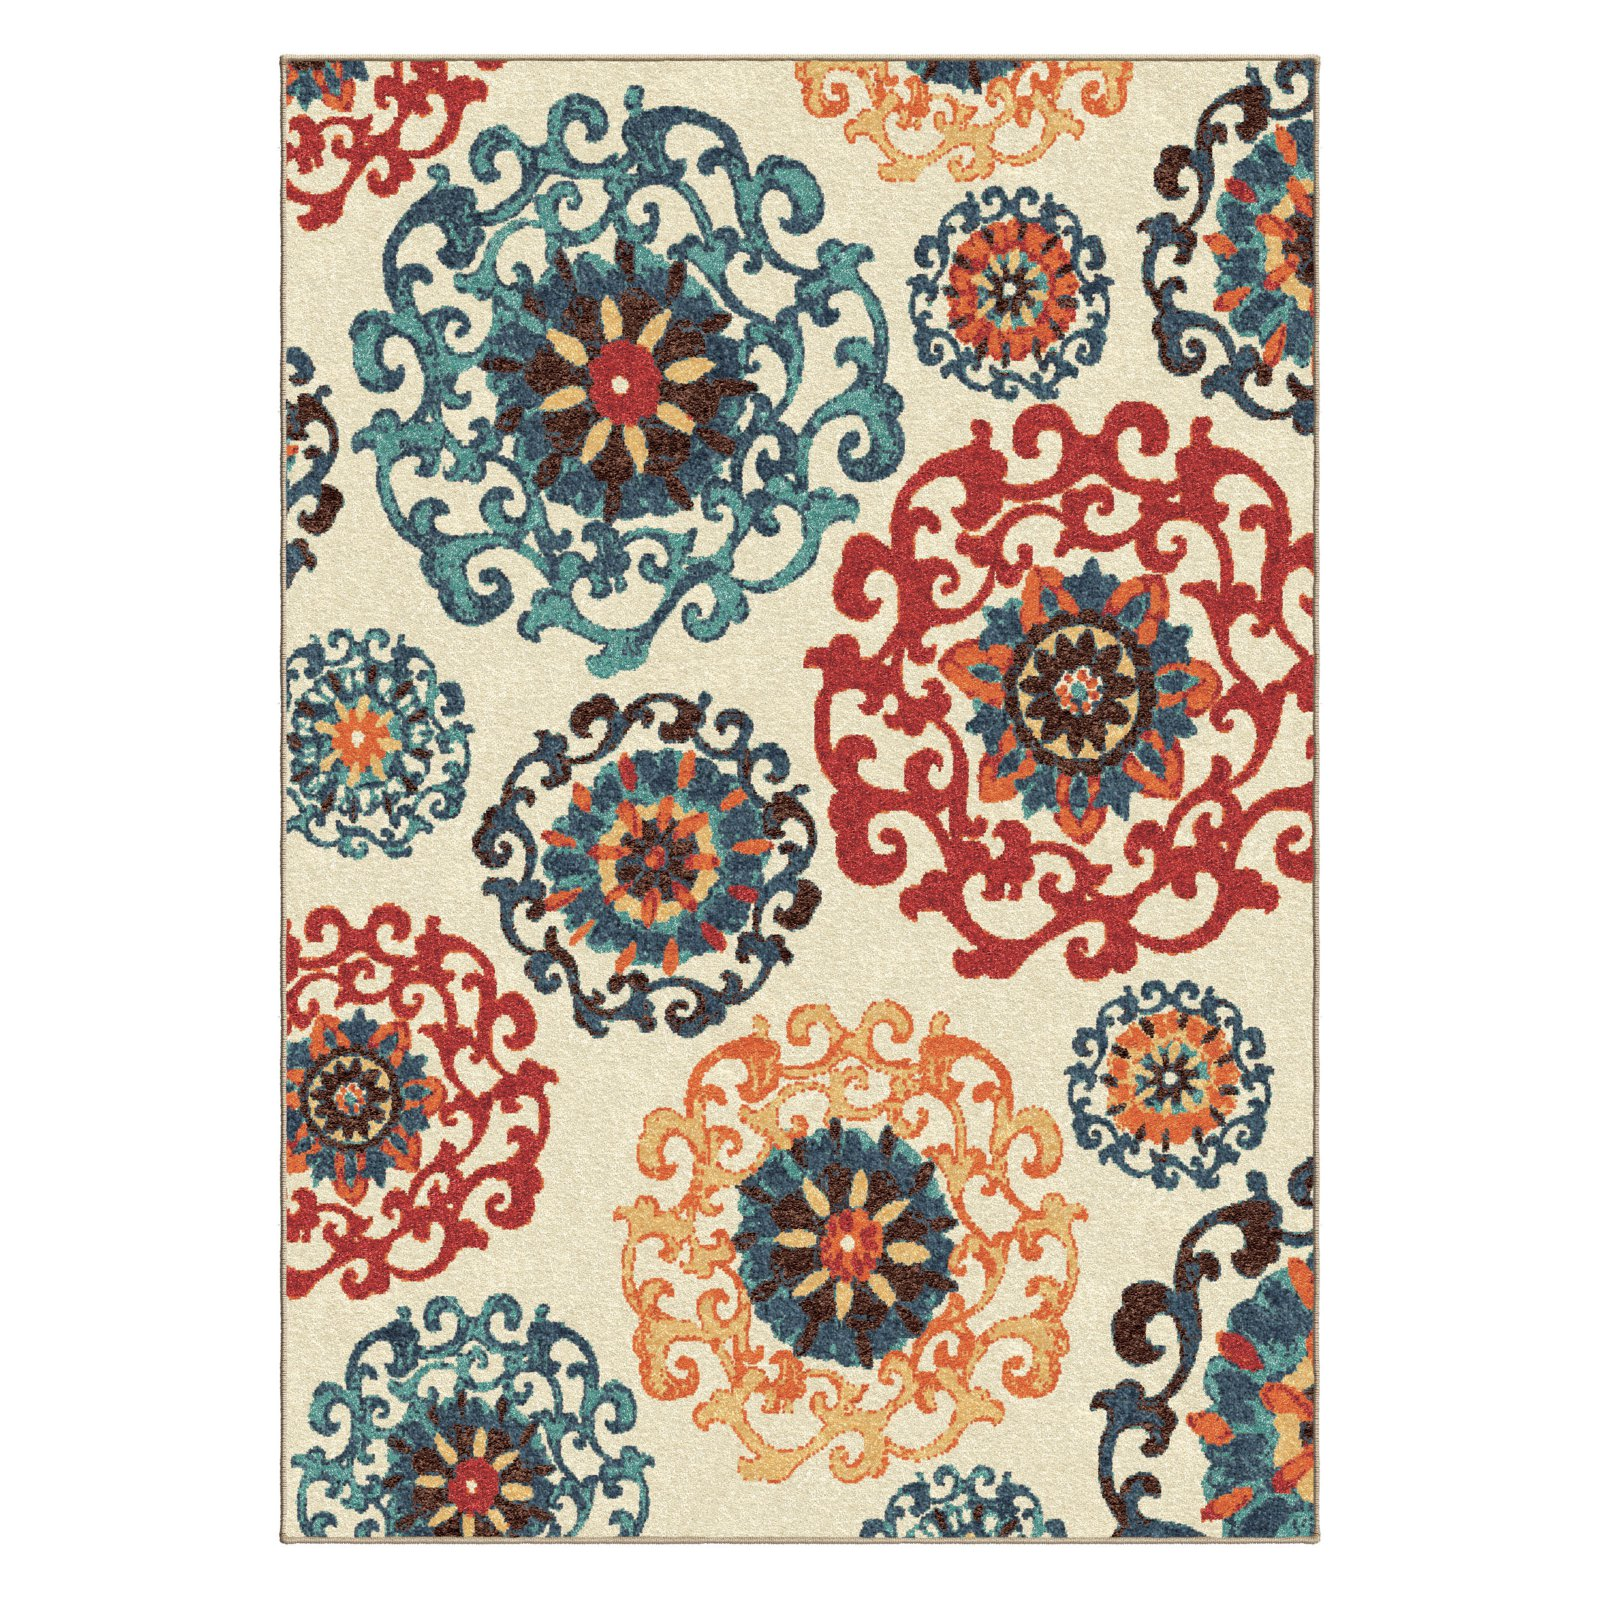 orangewhite white zipcode orange floral design area pdx reviews princess wayfair flowers rug rugs bright